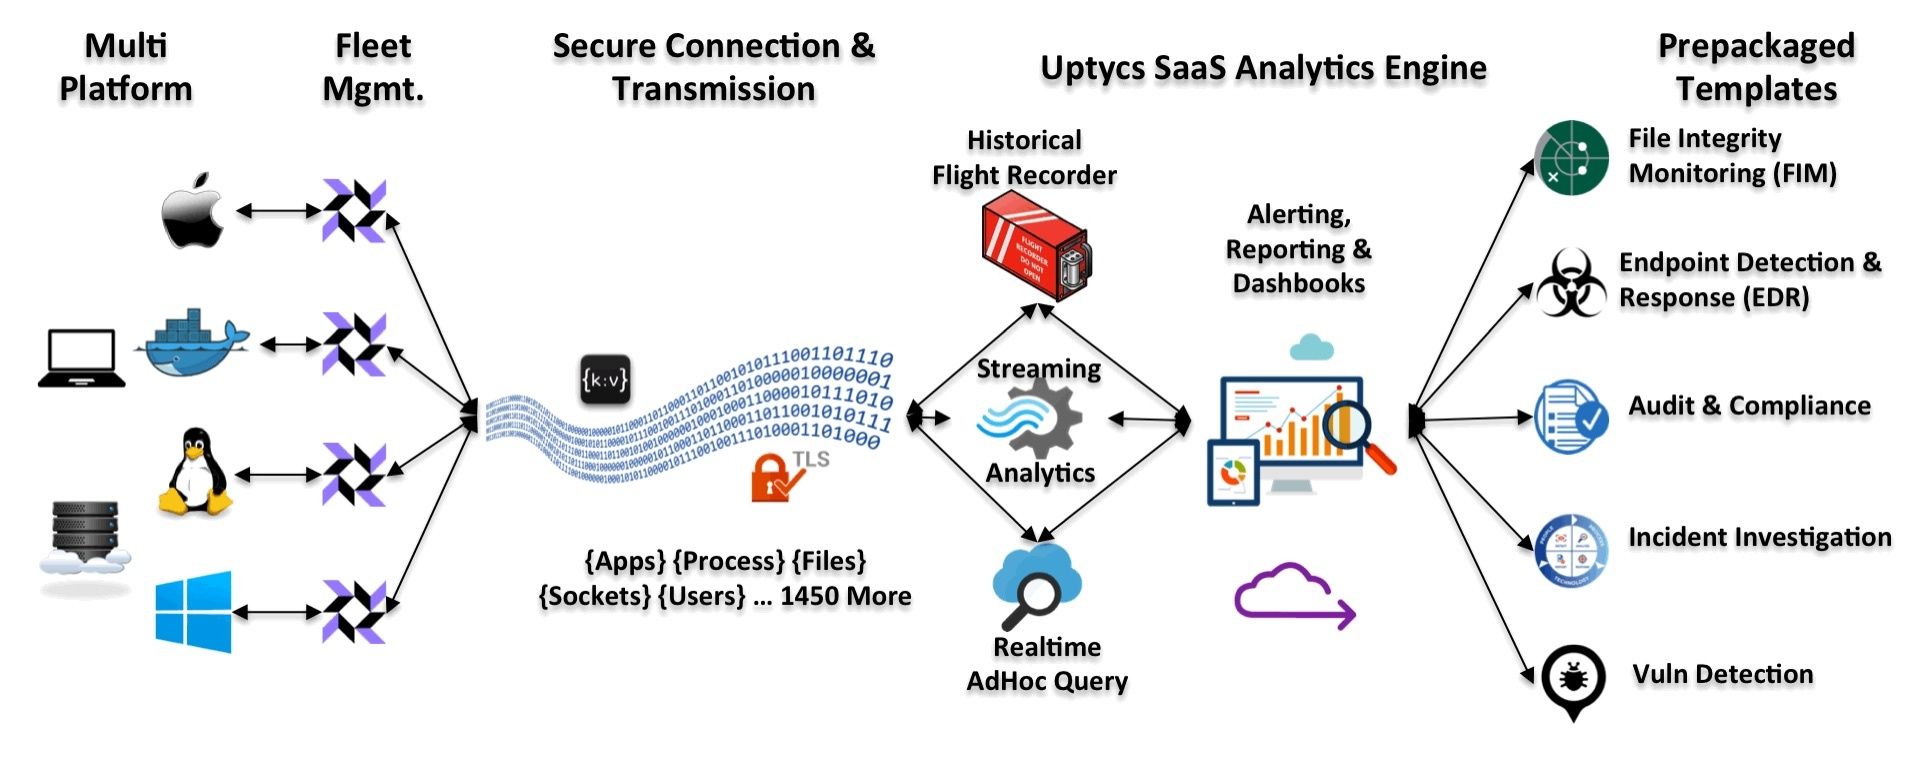 The Uptycs SaaS Solution